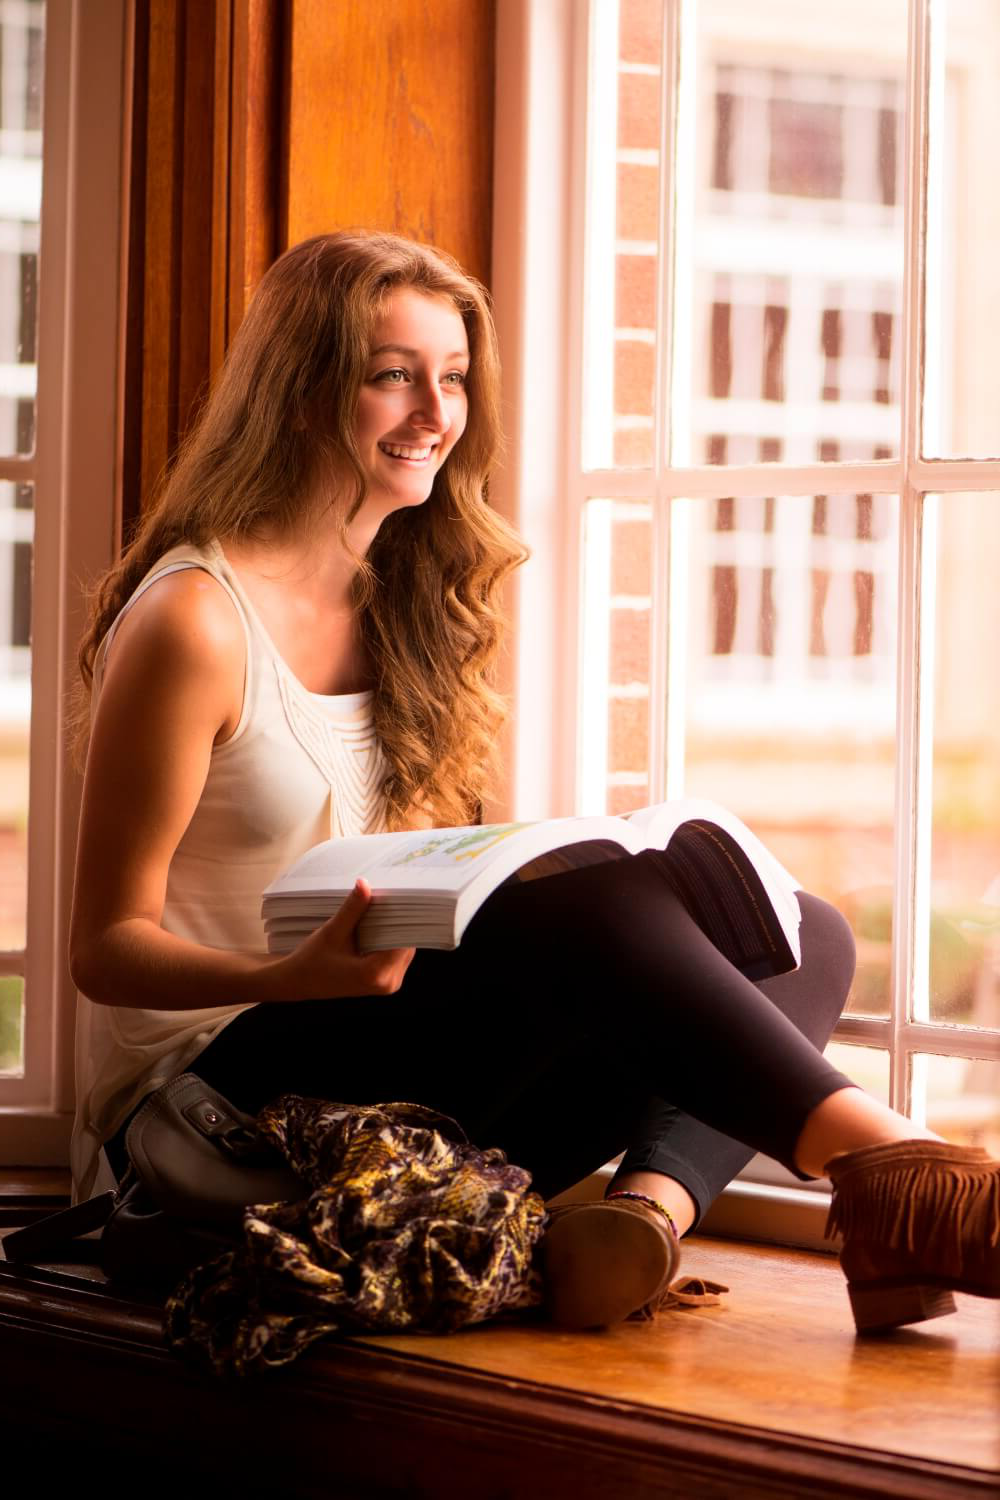 A student sits on a window sill in Sages restaurant 和 looks out over the Quad while reading a geography book.